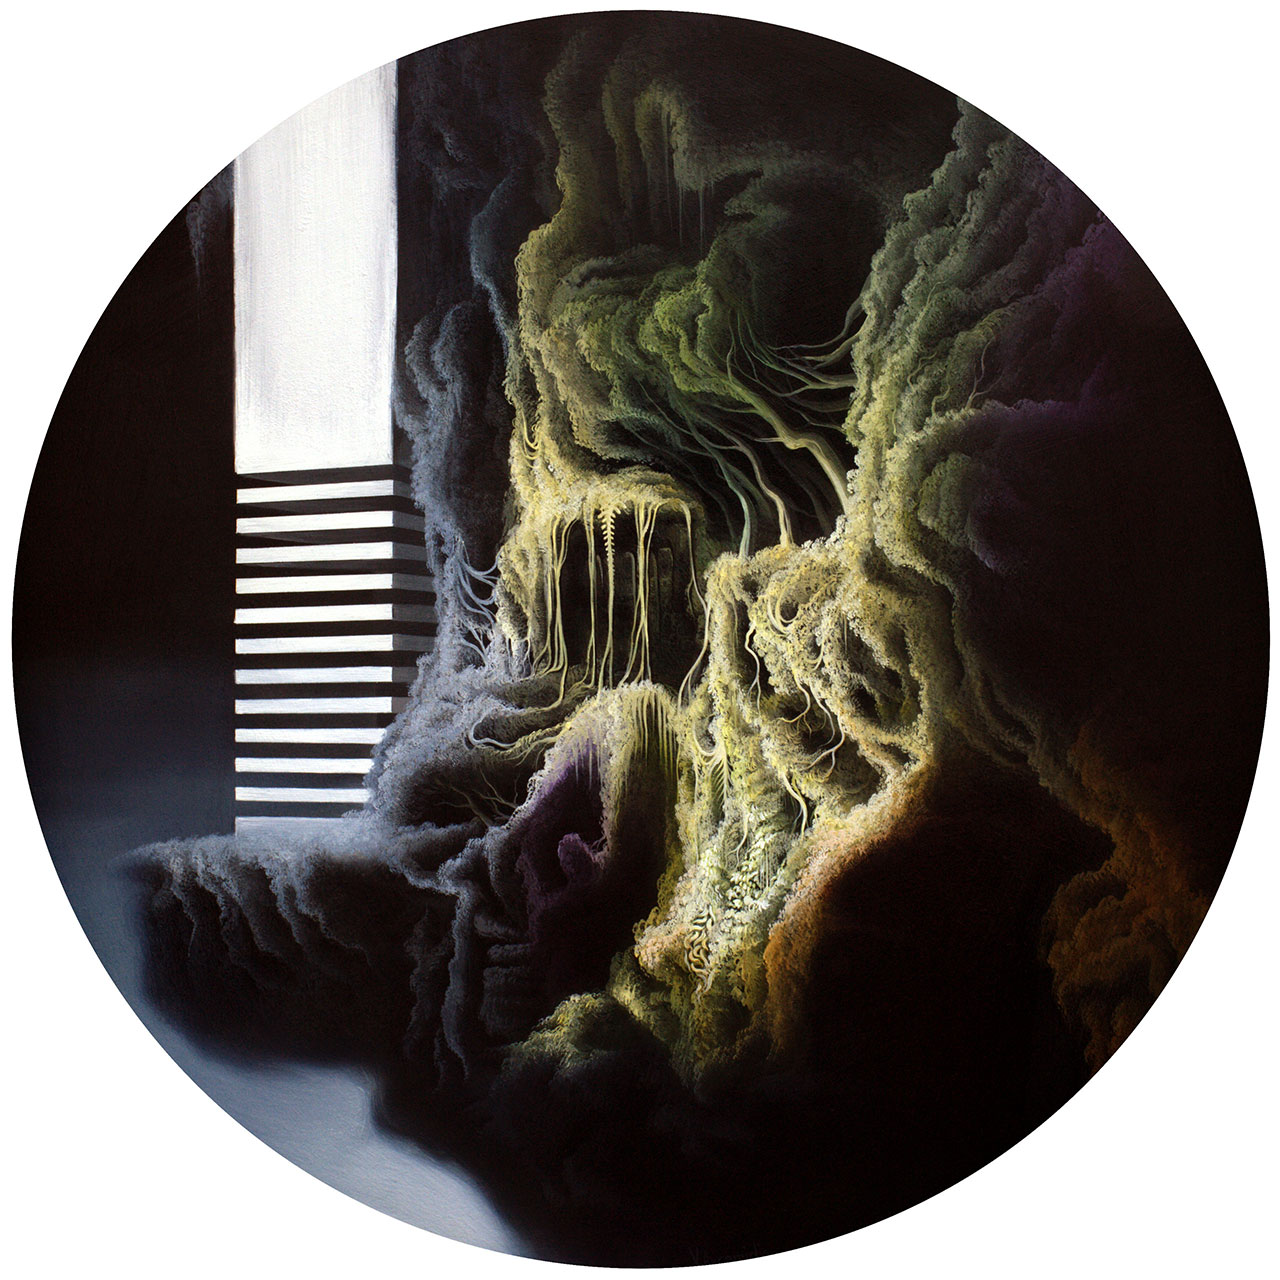 Vasilis Avramidis, Elevator, 2015, 50cm diameter, oil on wood.